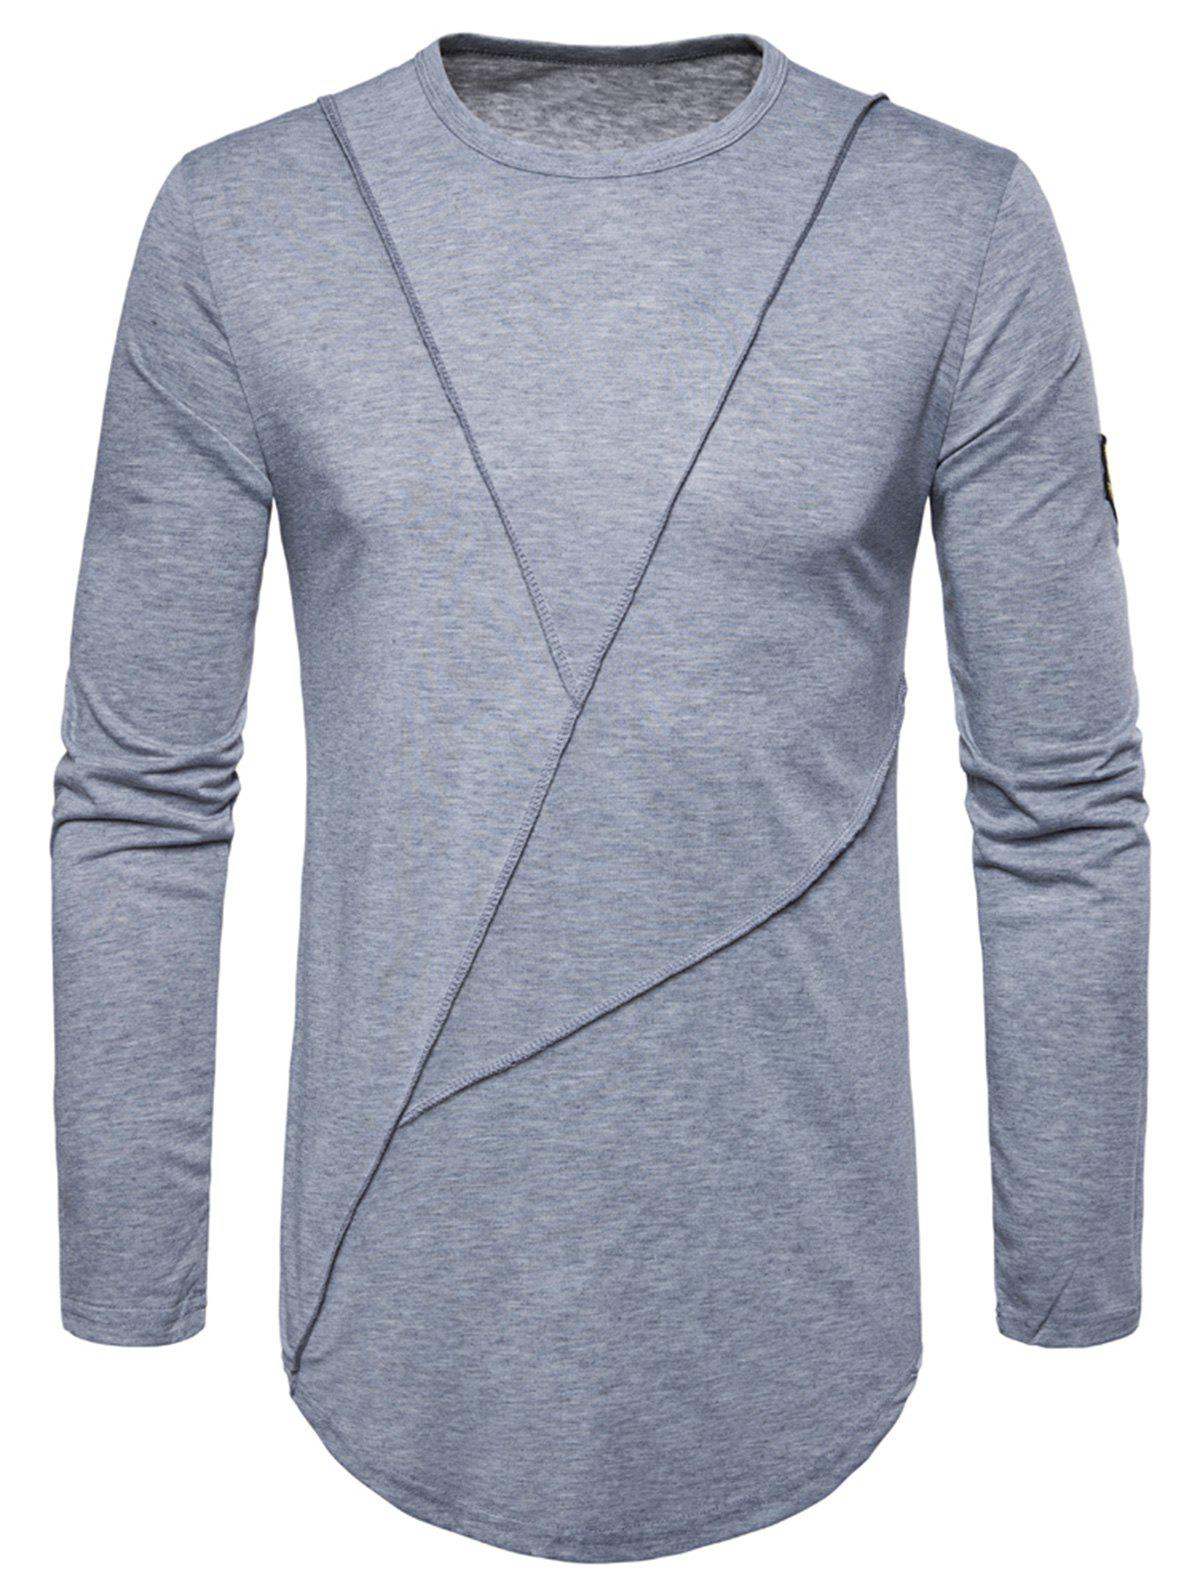 Curved Hem Embroidered Arrow Crew Necklace T-shirt